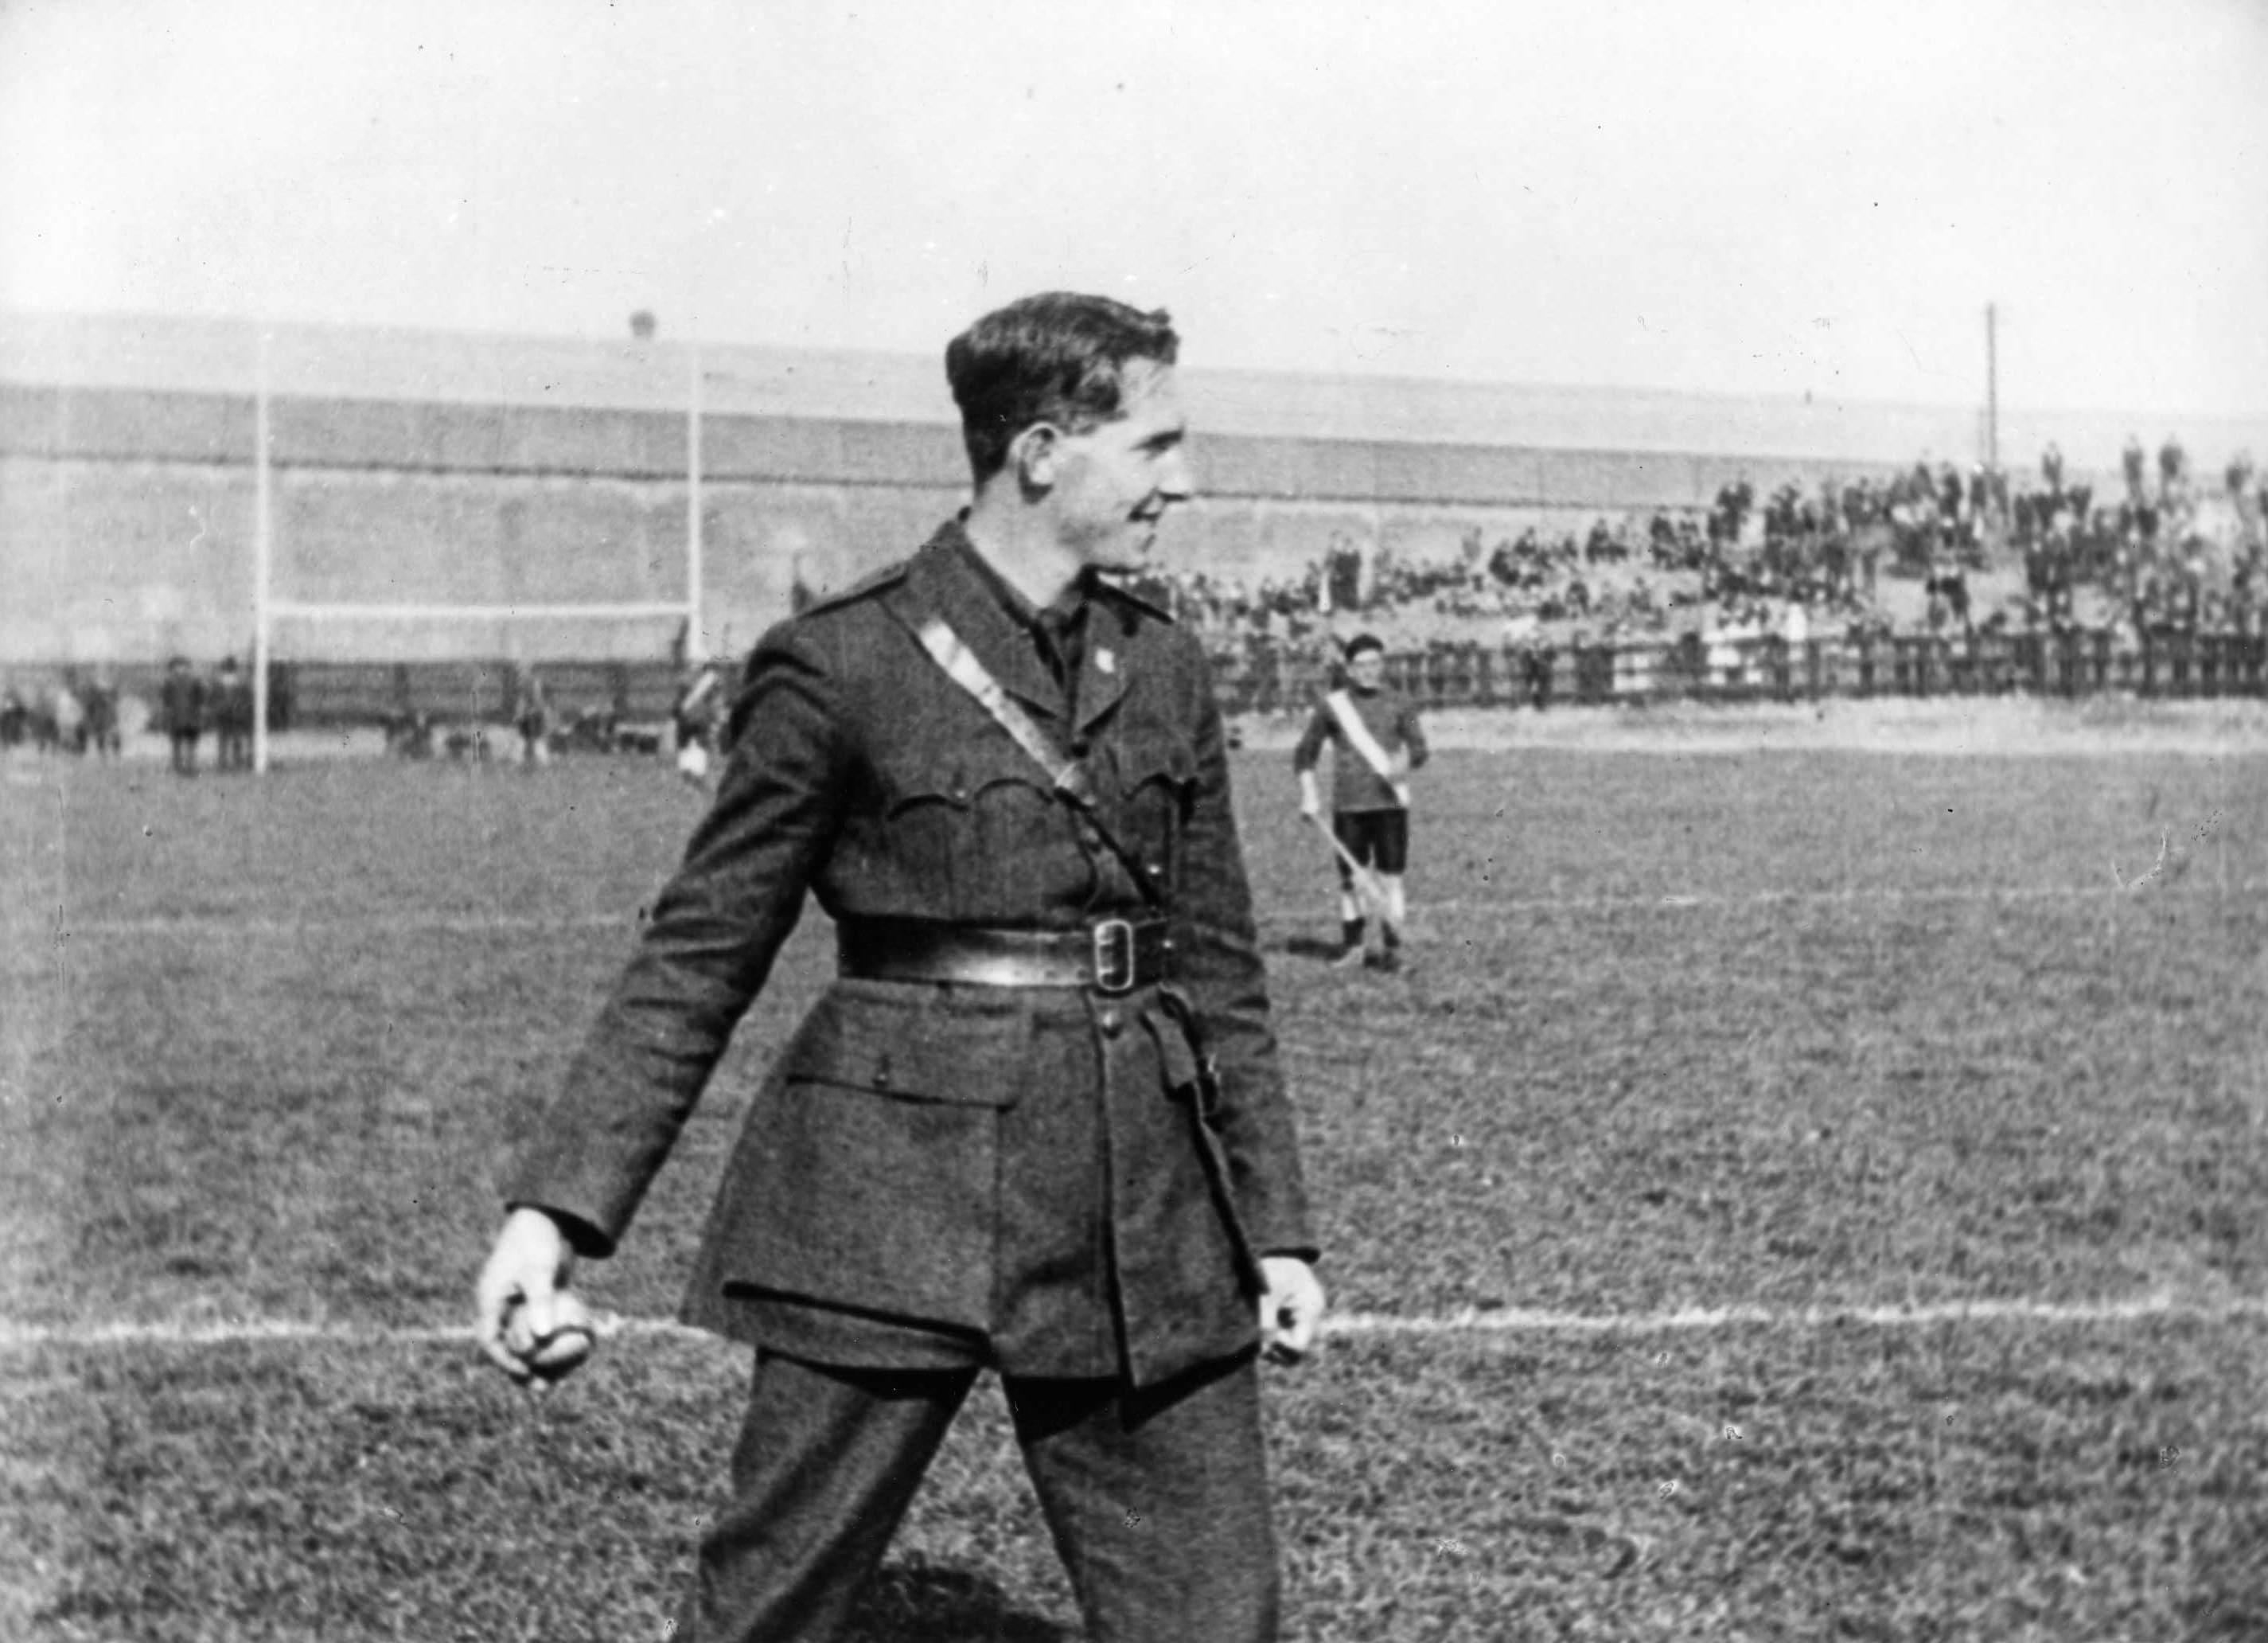 General McKeown throwing in the sliotar at Croke Park, 1921